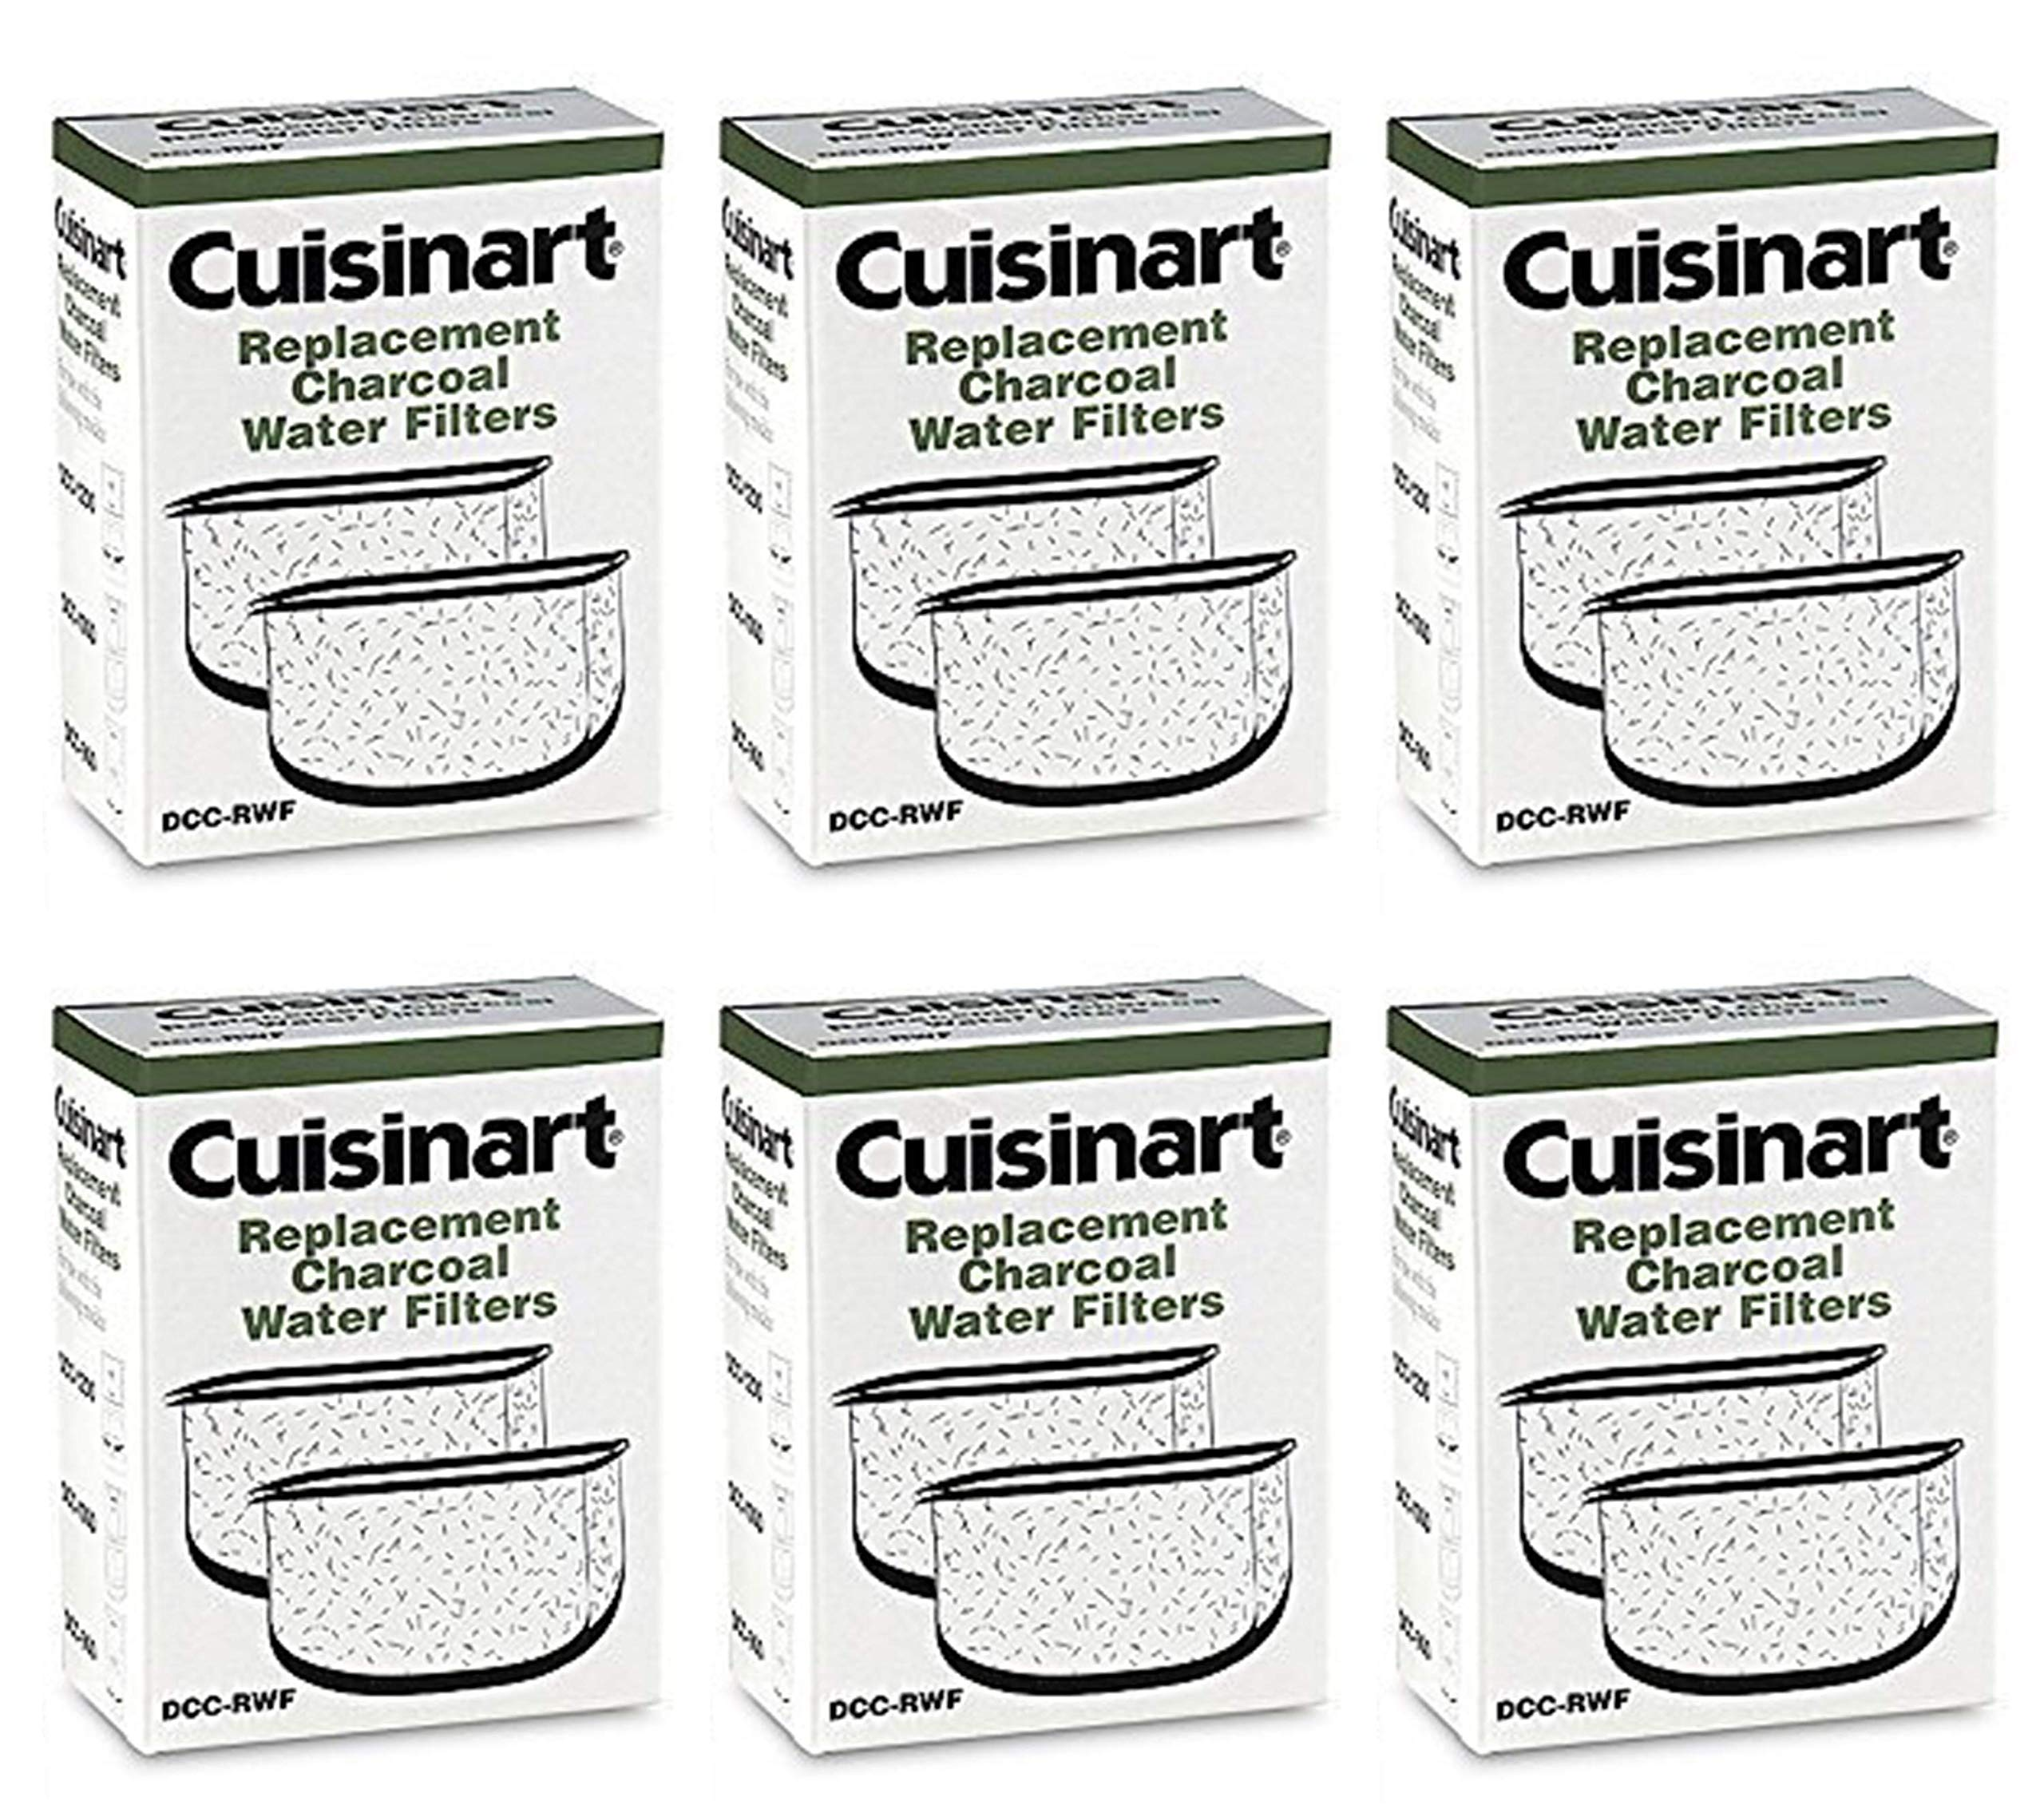 Cuisinart DCC-RWF-6PK (12 Filters) Charcoal Water Filters in Cuisinart DCC-RWF Retail Box by Cuisinart